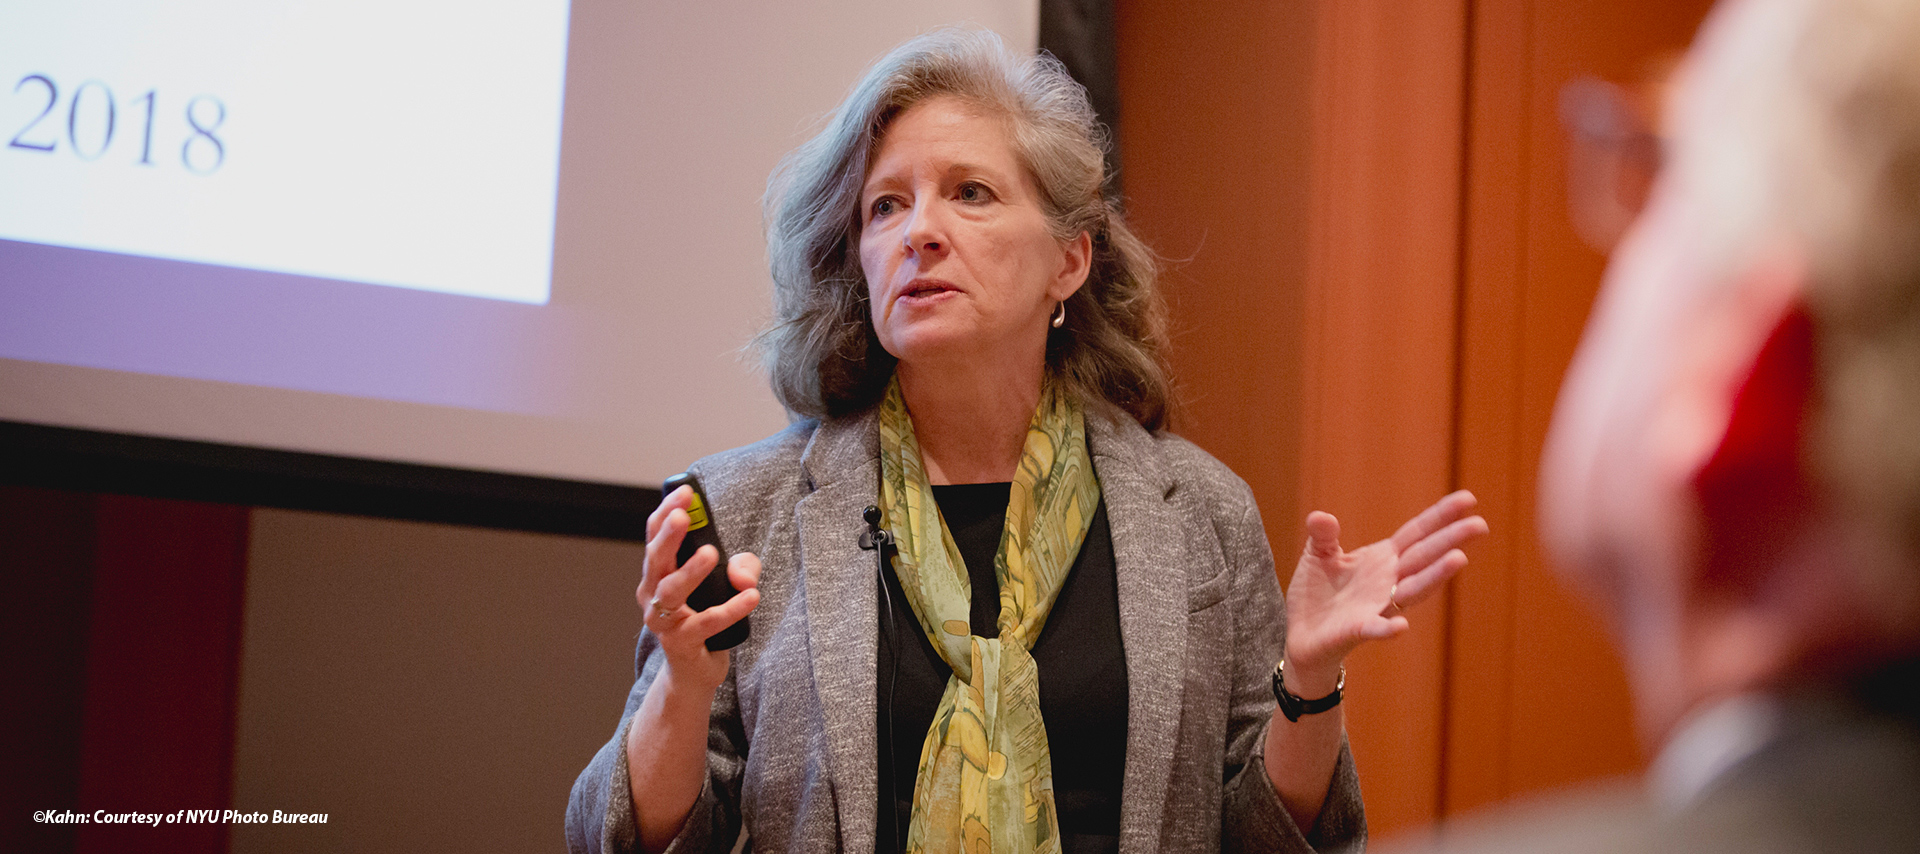 image of a visiting speaker at her lecture